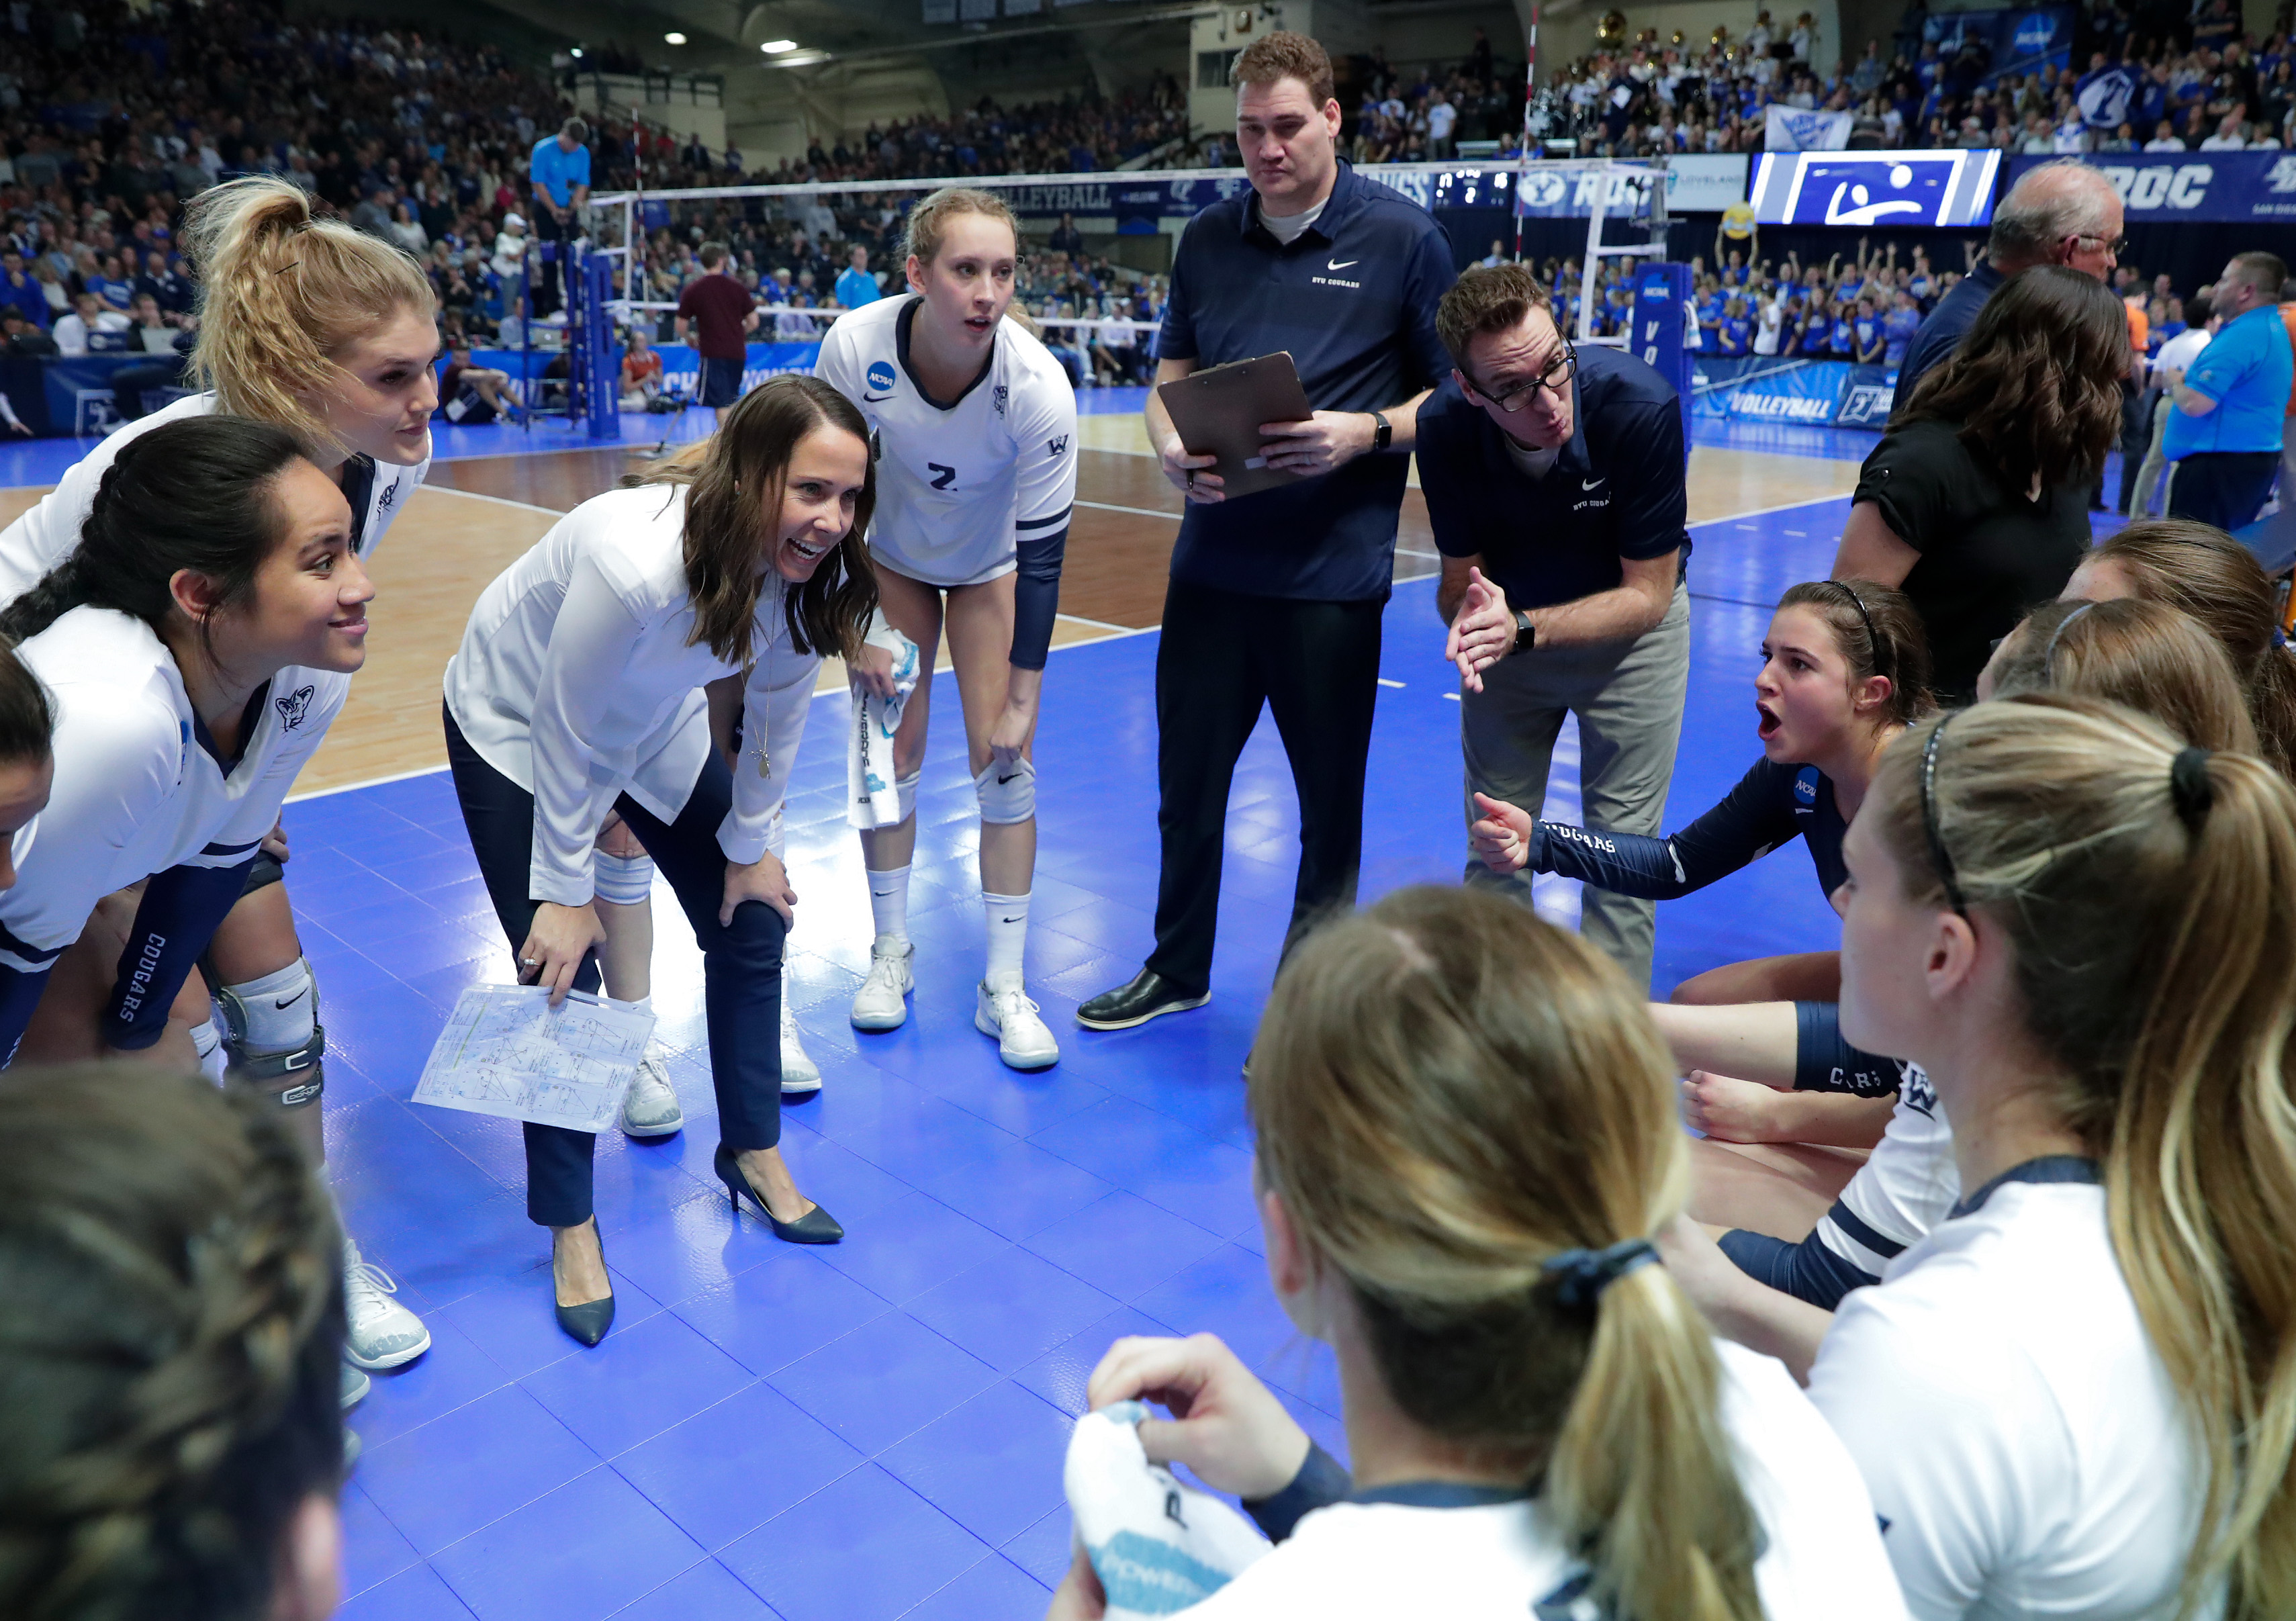 The No. 4 BYU Women's Volleyball team defeats No. 5 Texas 3-0 in the Regional Final of the NCAA Women's Volleyball Championships.